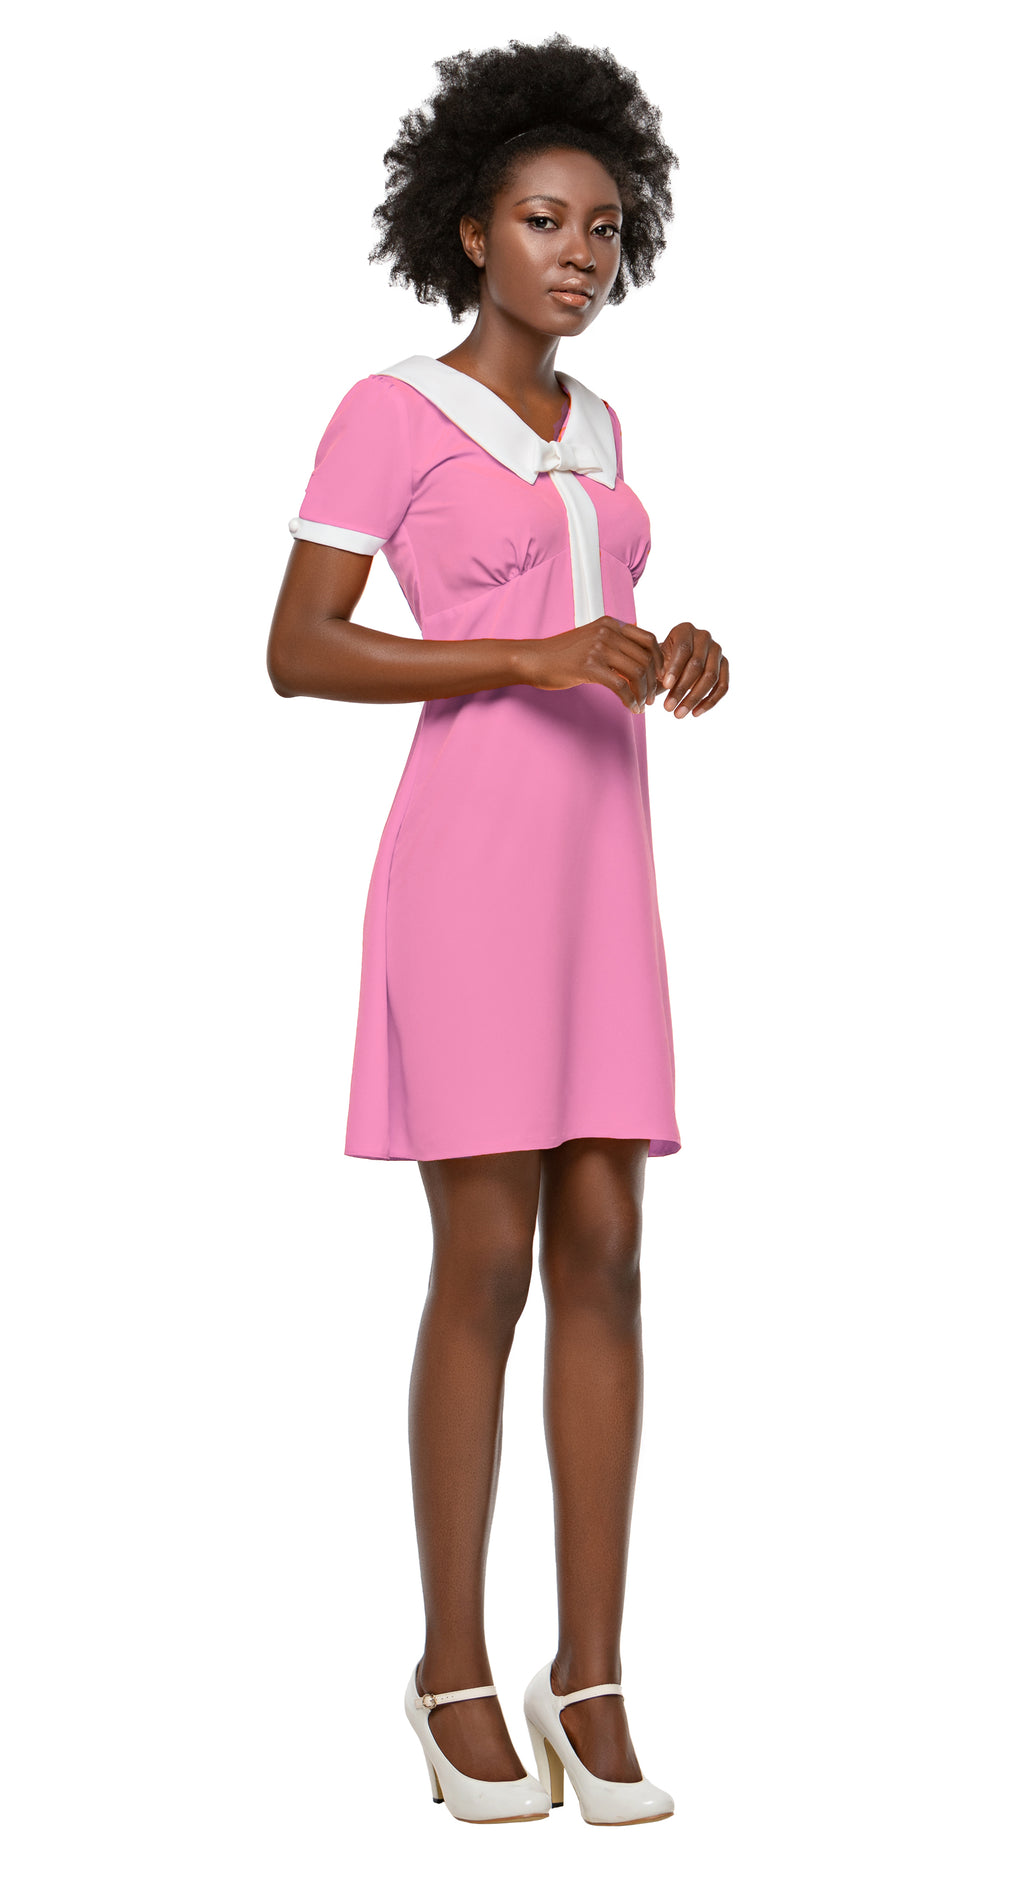 MARMALADE 60s Style Dress with Collar and Bow in Pink